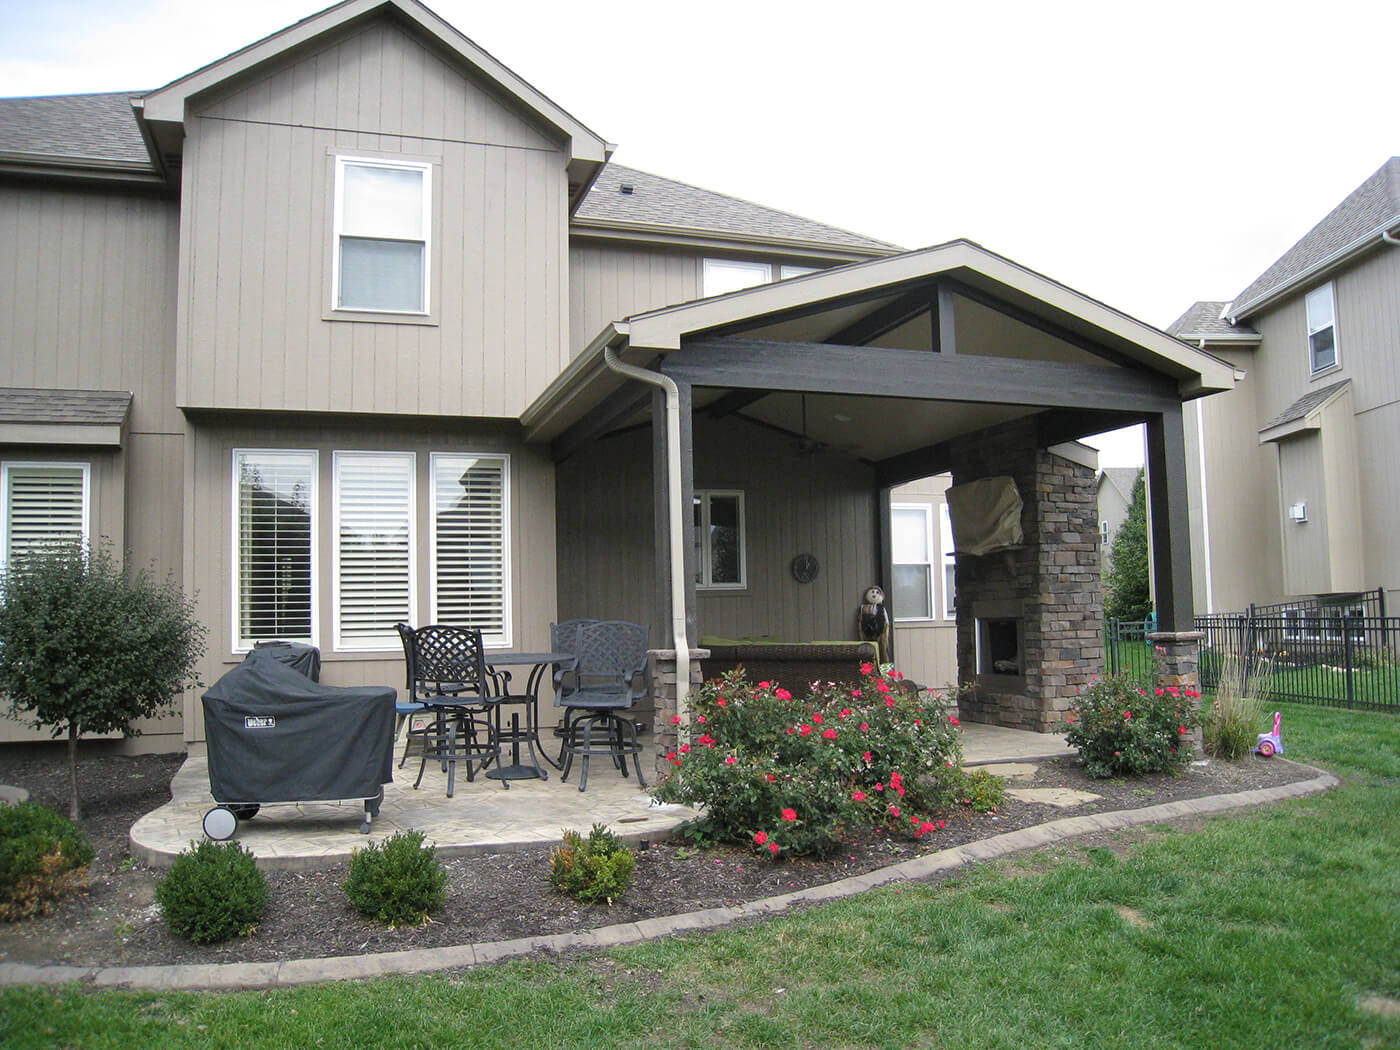 Custom covered porch and patio with seating area